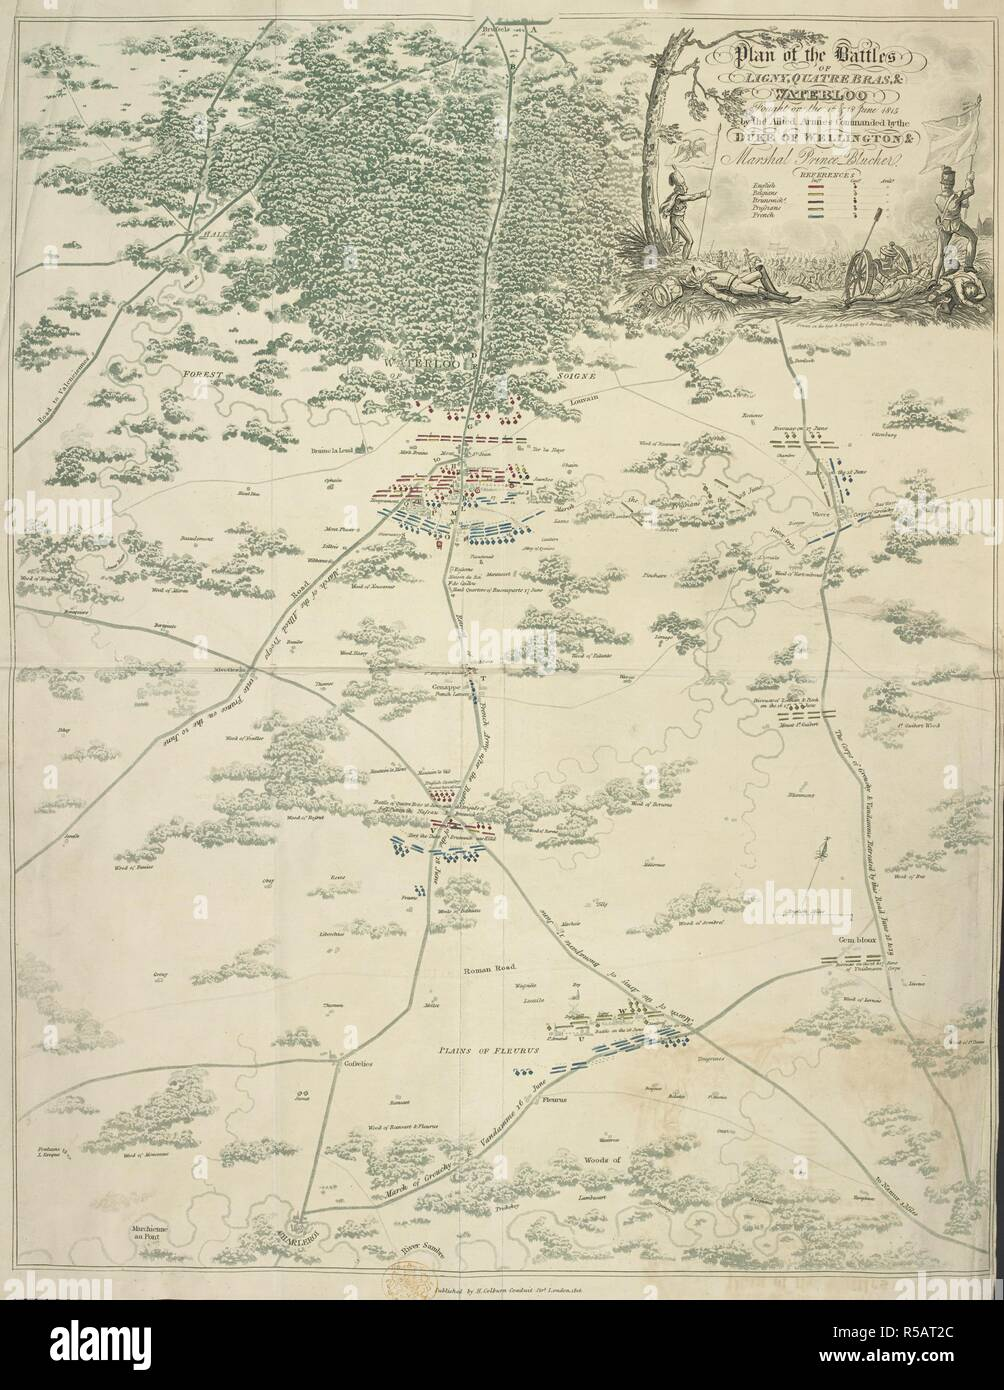 Plan of the battles of Ligny, Quatre Bras, & Waterloo, fought on the 16 & 18th June 1815 by the allied armies commanded by the Duke of Wellington & marshal Blucher. An Historical Account of the Campaign in the Netherlands, in 1815, under His Grace the Duke of Wellington, and Marshal Prince Blucher, comprising the battles of Ligny, Quatrebras, and Waterloo; with a detailed narrative of the political events connected with those memorable conflicts down to the surrender of Paris, and the departure of Bonaparte for St. Helena ... Embellished with ... plates ... from drawings ... by James Rouse. Lo - Stock Image